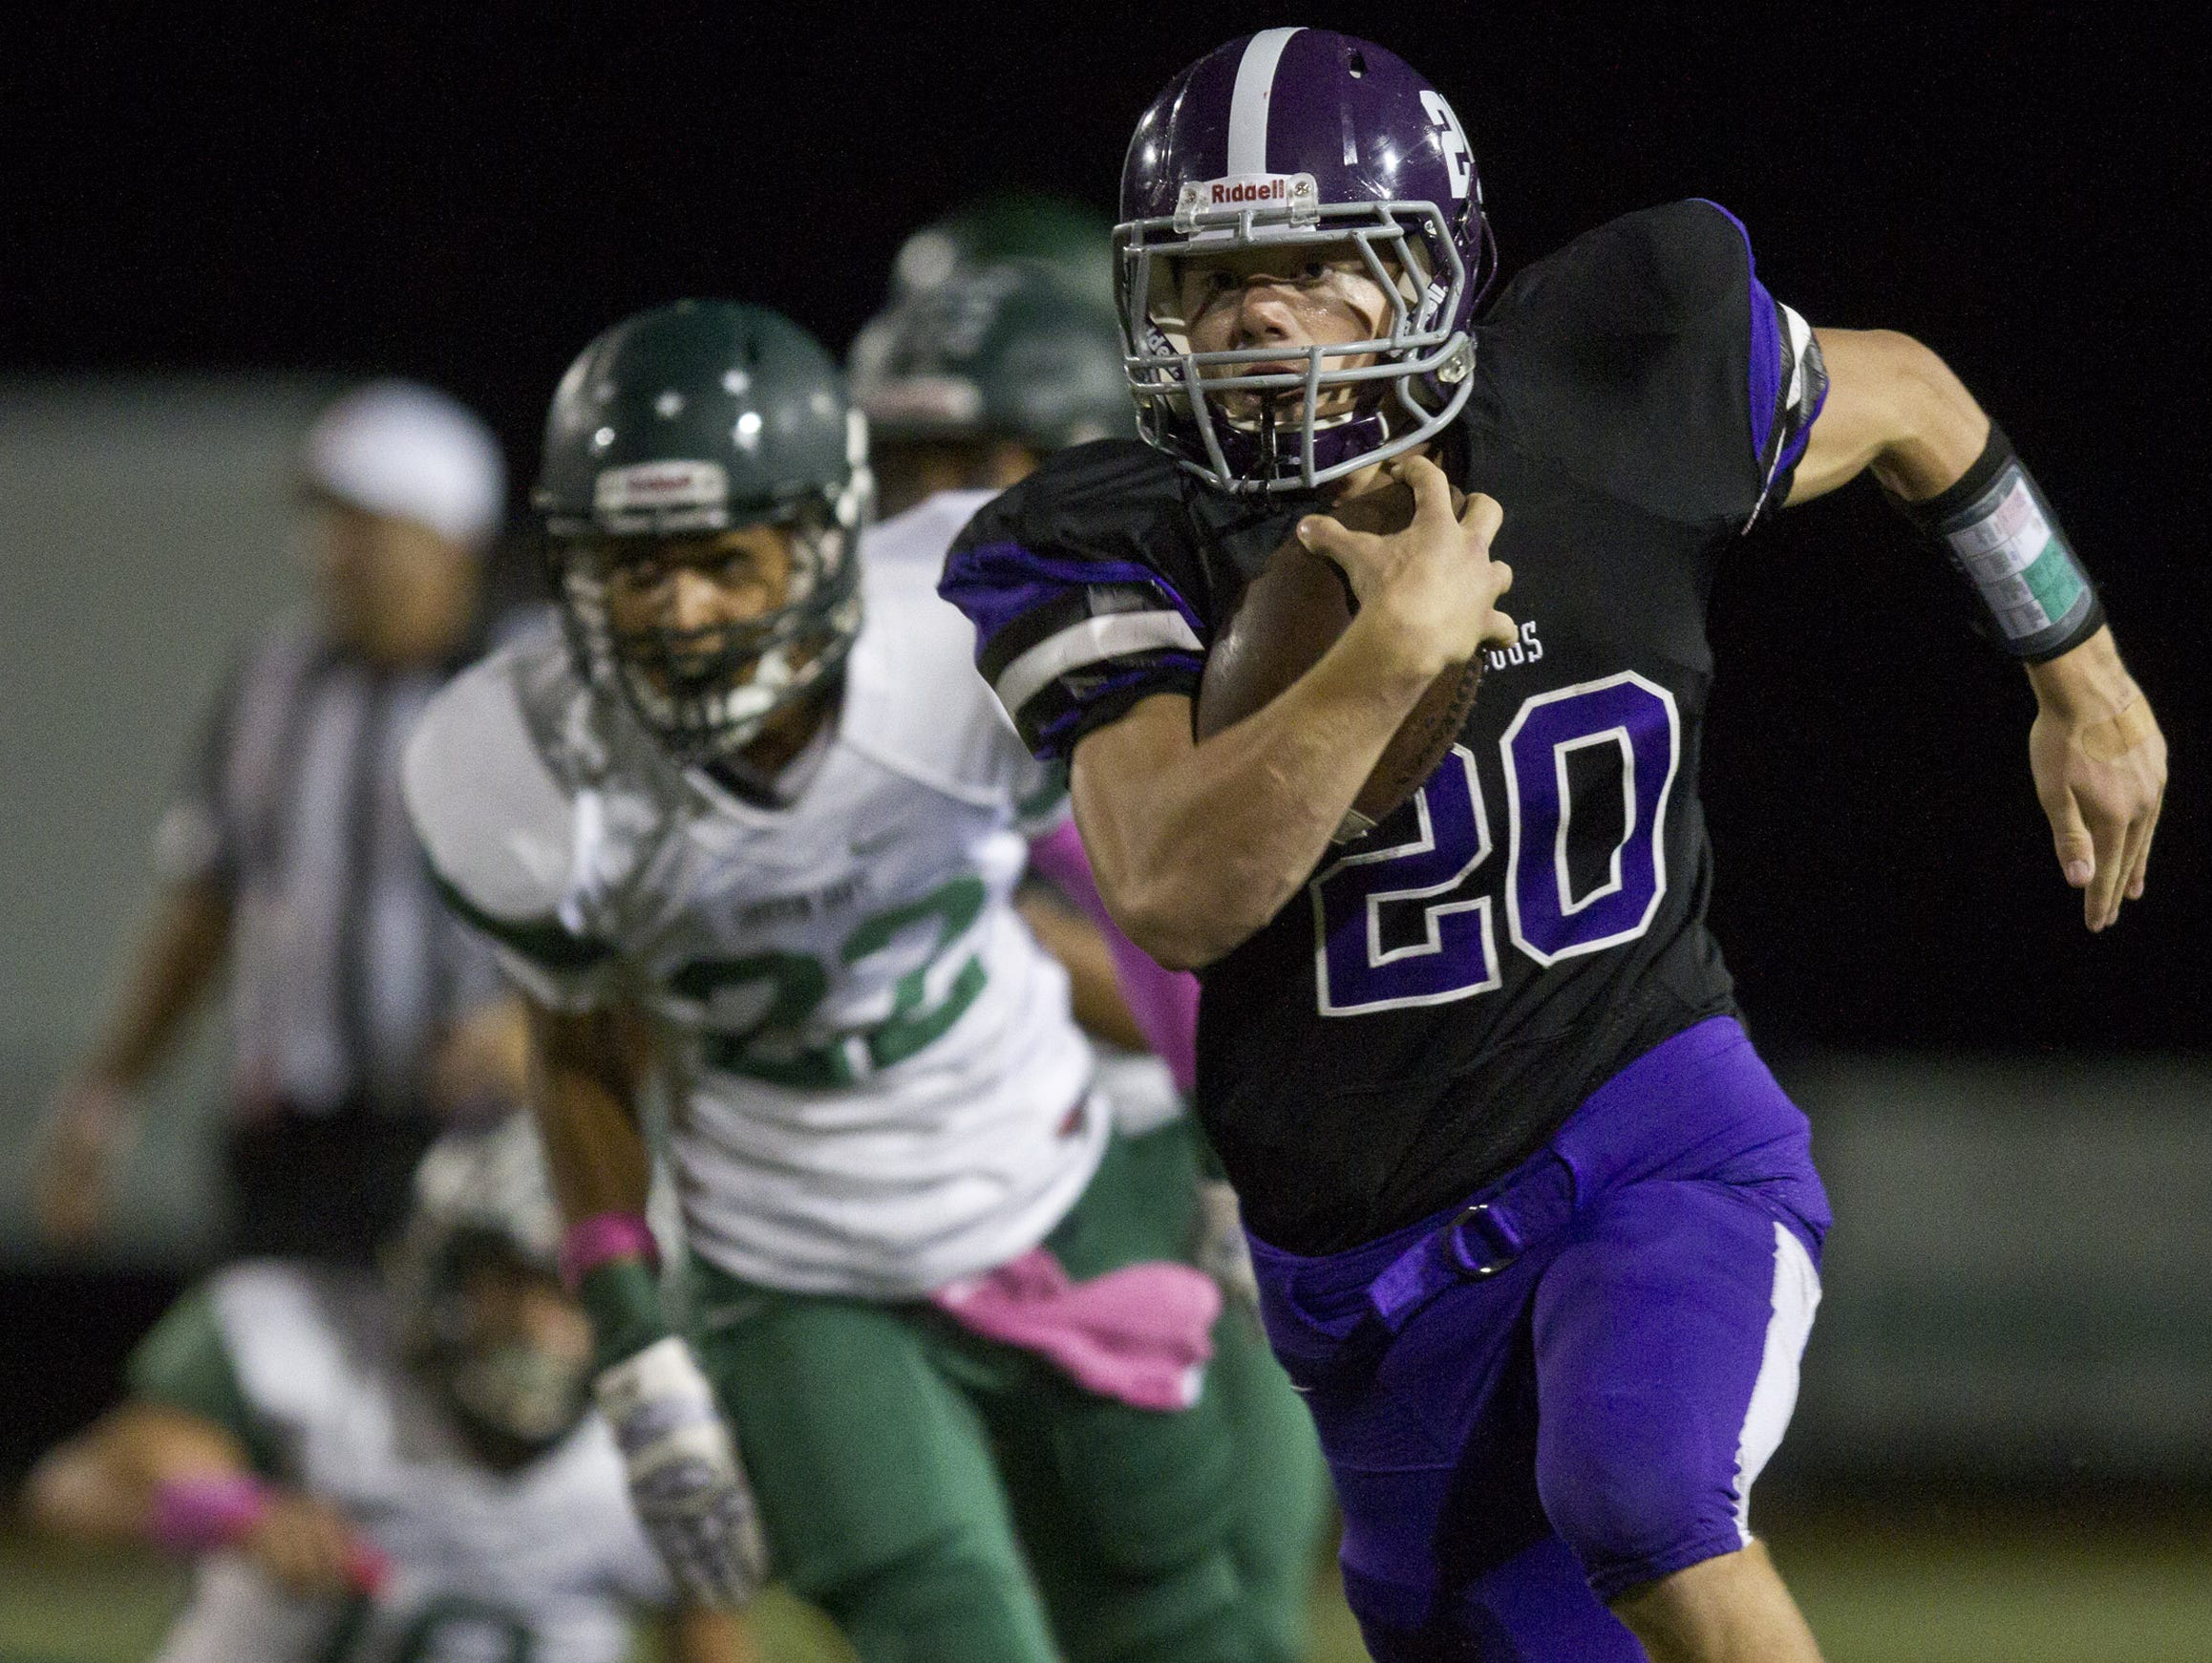 Rumson-Fair Haven running back Bryan Hess (No. 20), shown running against Long Branch on Oct. 9, will be a key player for the Bulldogs against Shore on Thursday.